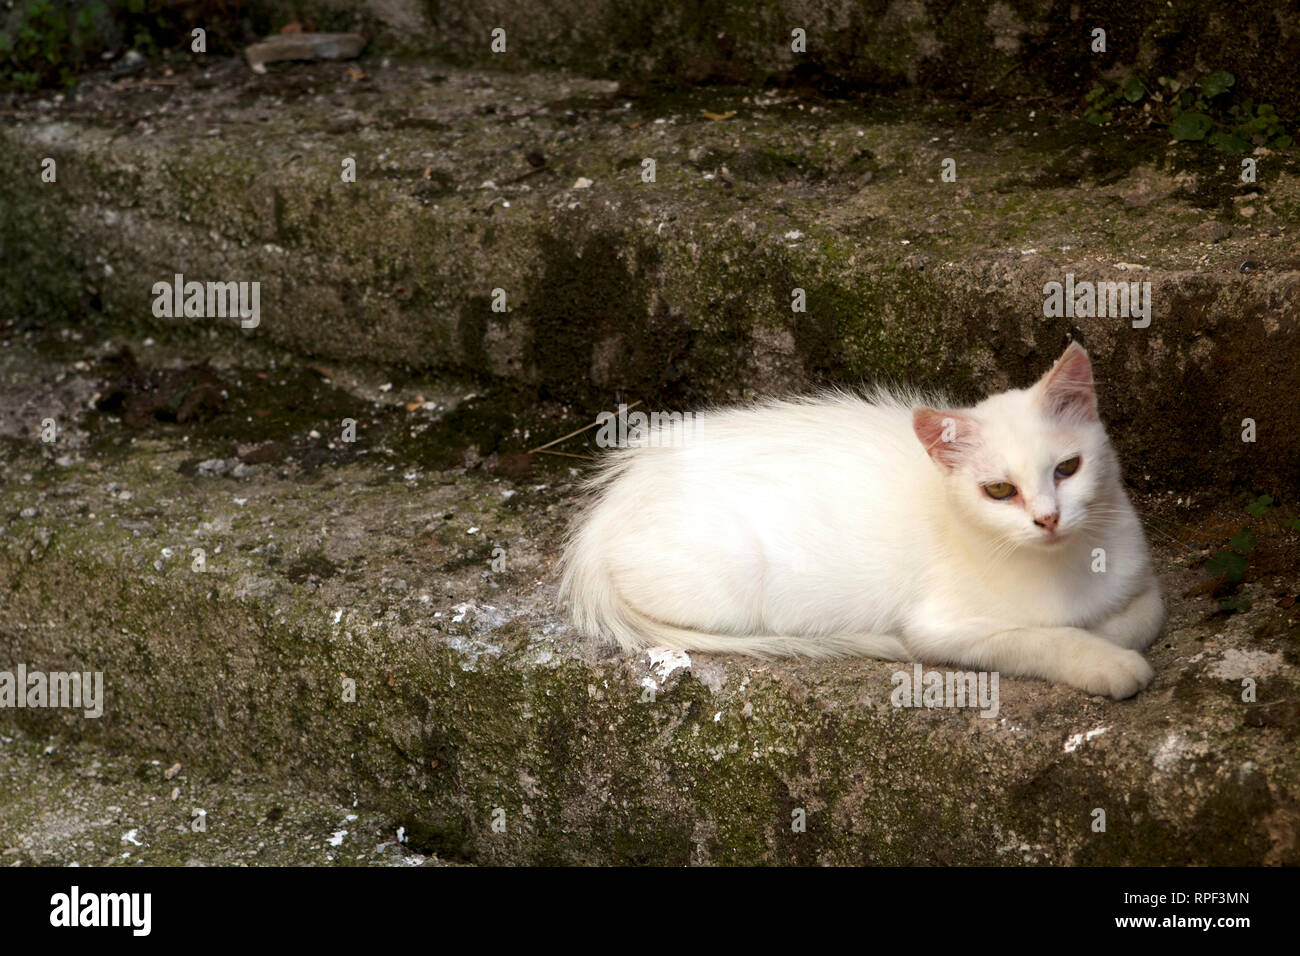 Flauschig Stock Photos Flauschig Stock Images Alamy